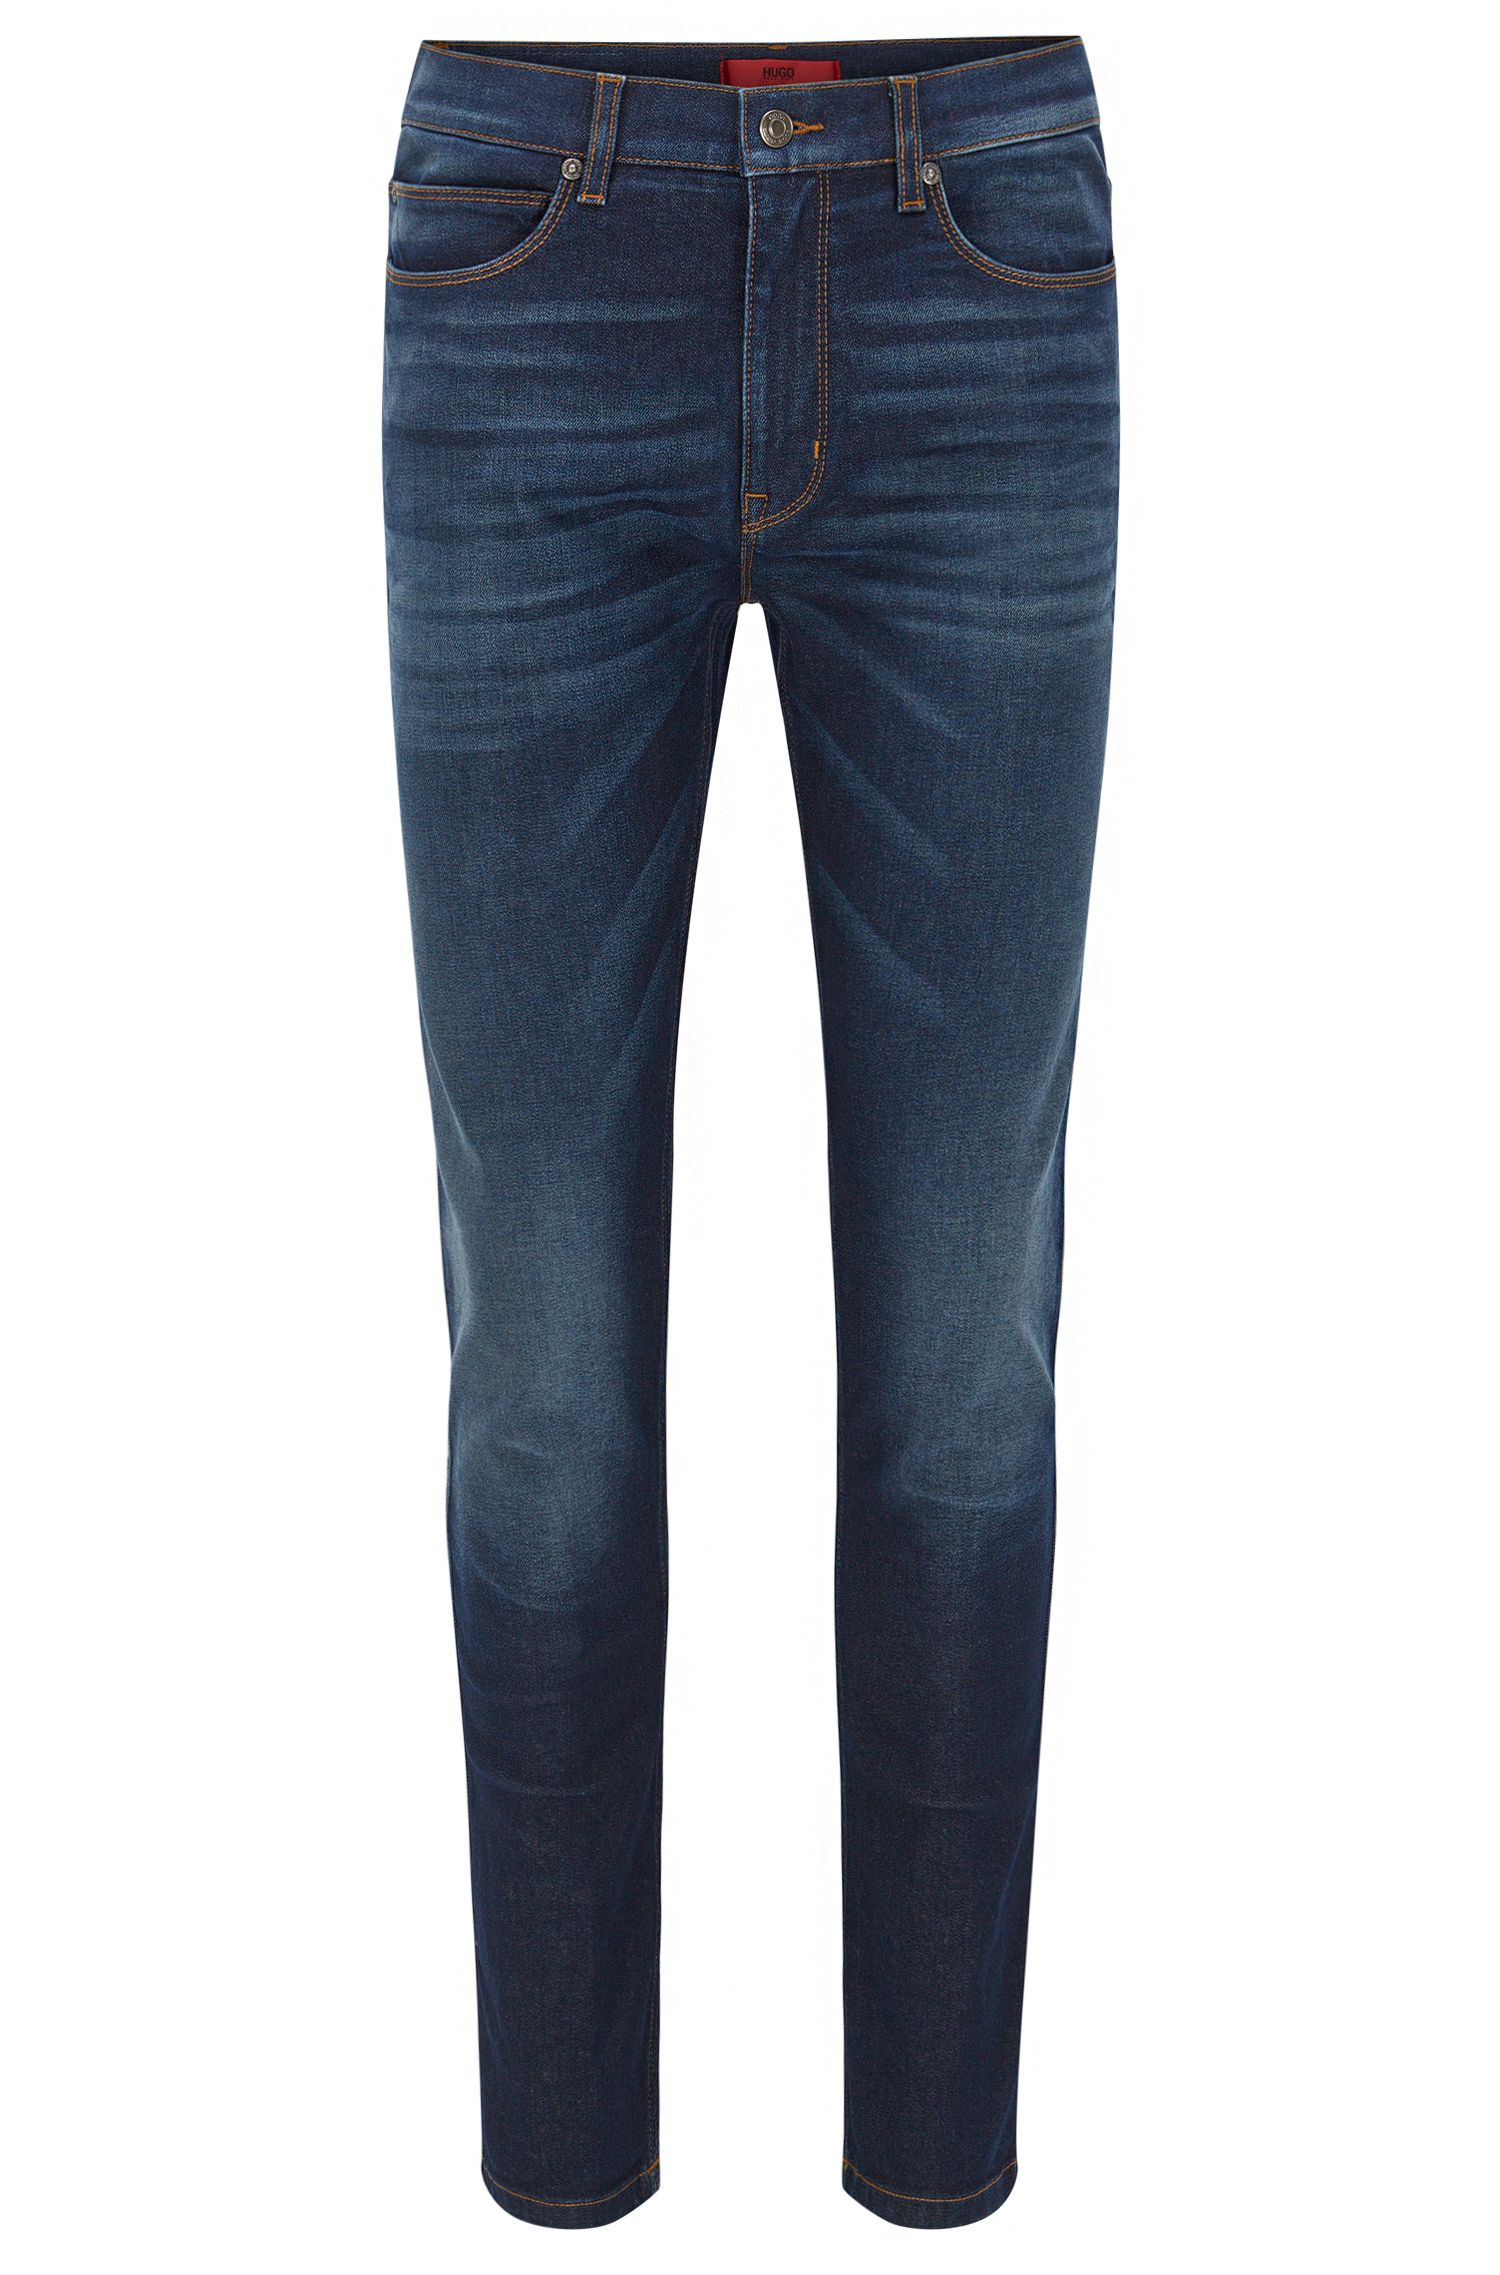 Jeans bleu Skinny Fit stone-washed en denim stretch